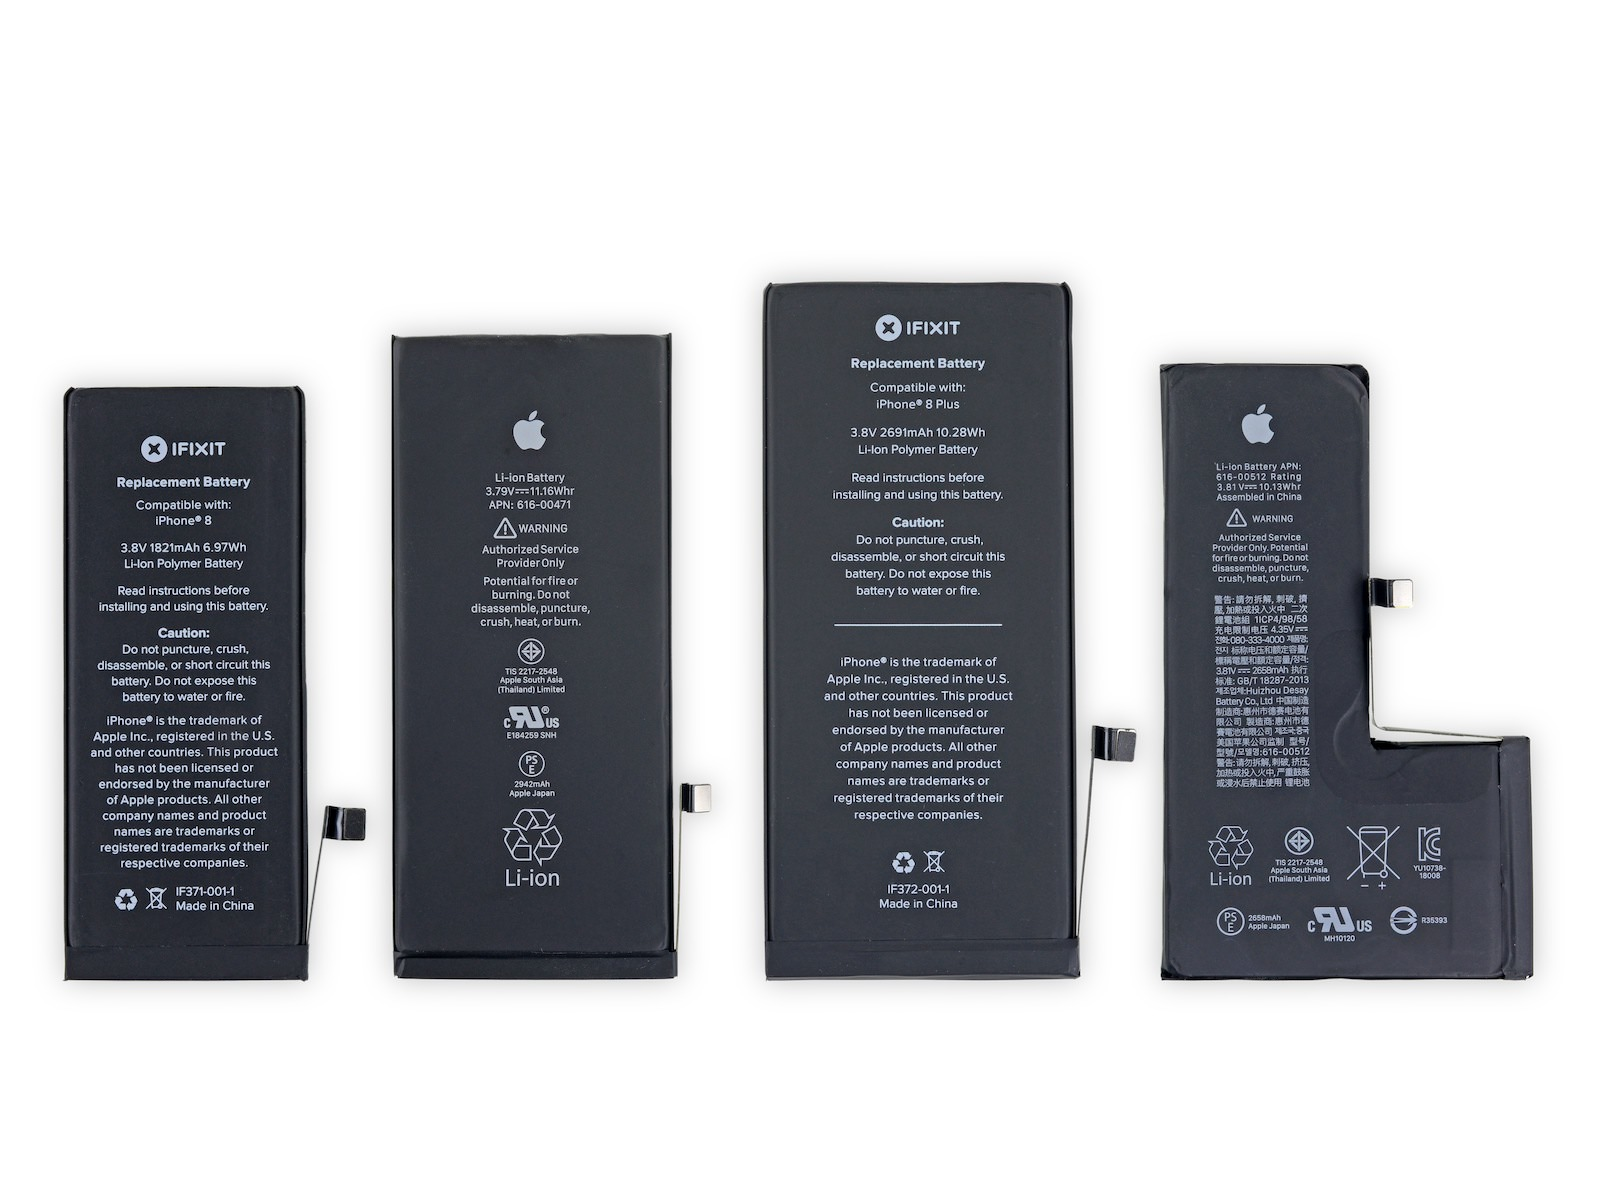 Iphone batteries comparison